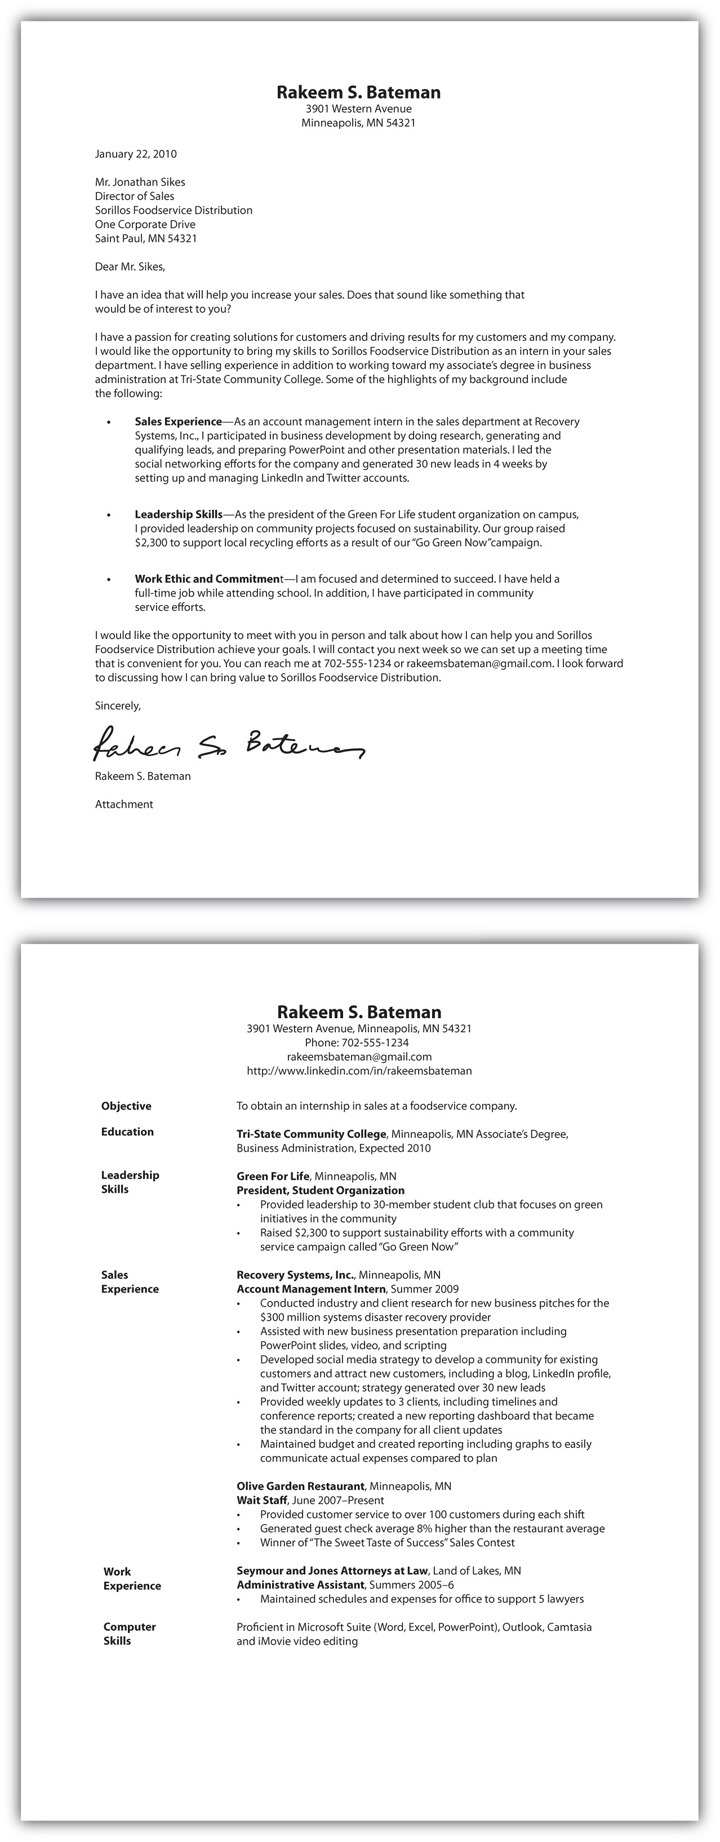 cover letter resume one document